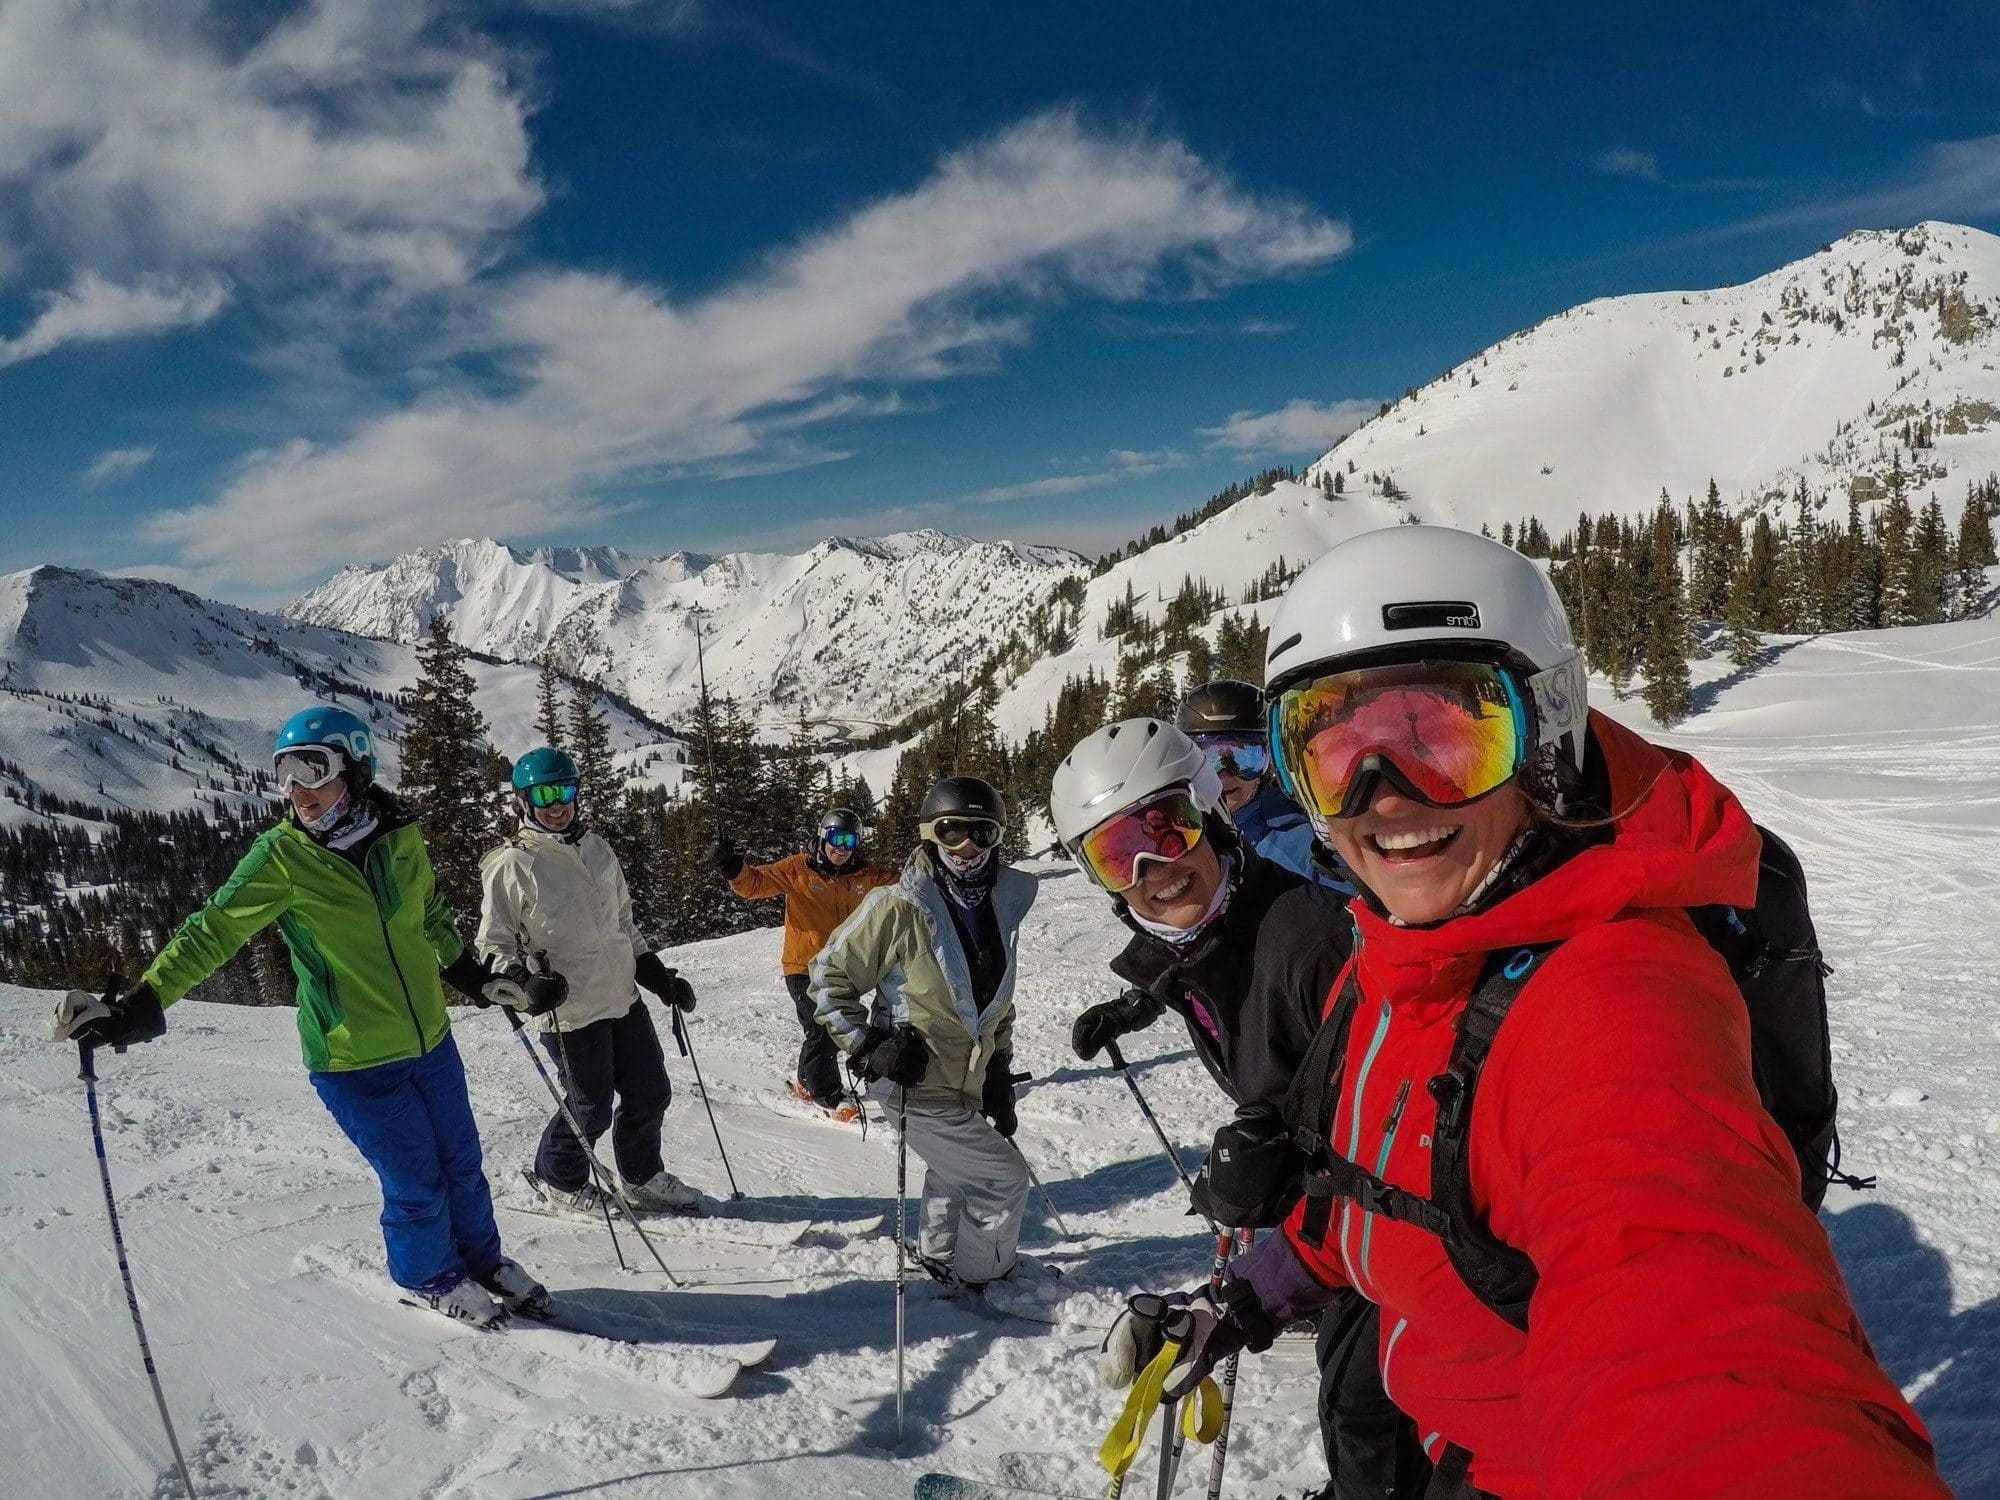 Learn how to ski this winter with these top 10 beginner skier tips for adults. Find advice on gear, technique & form, lessons & more!